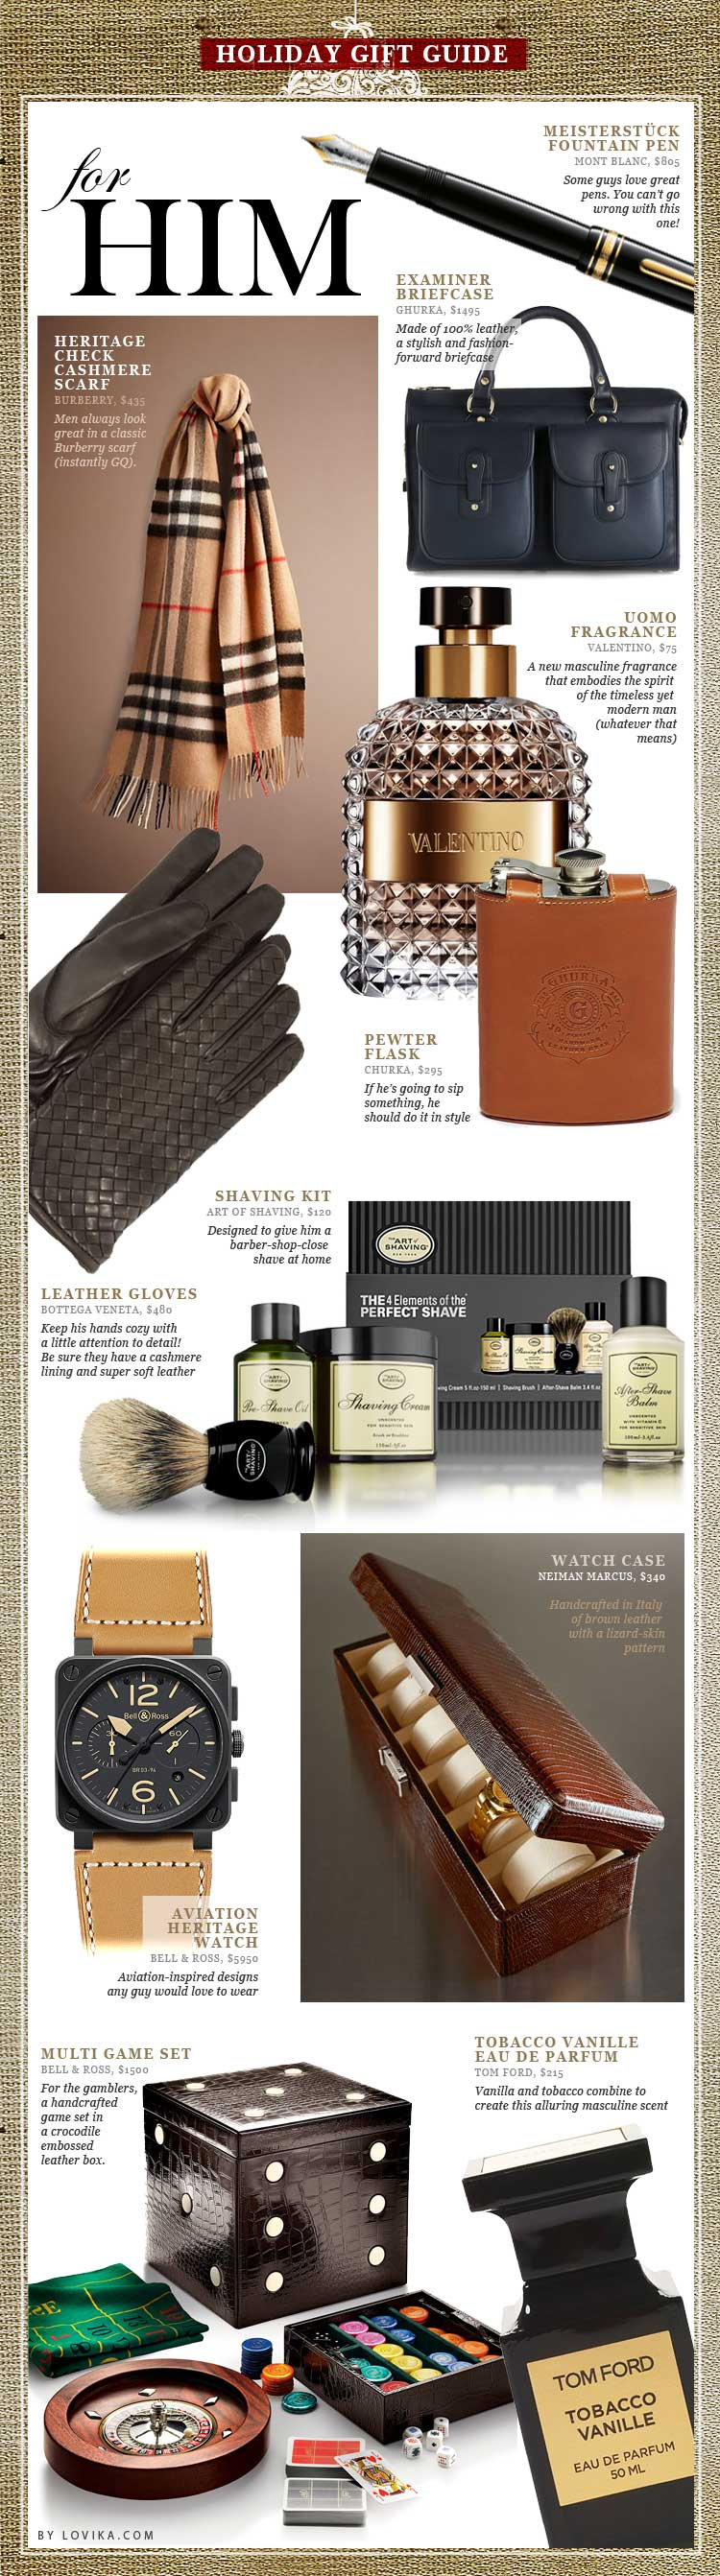 lovika luxury holiday gift guide for him